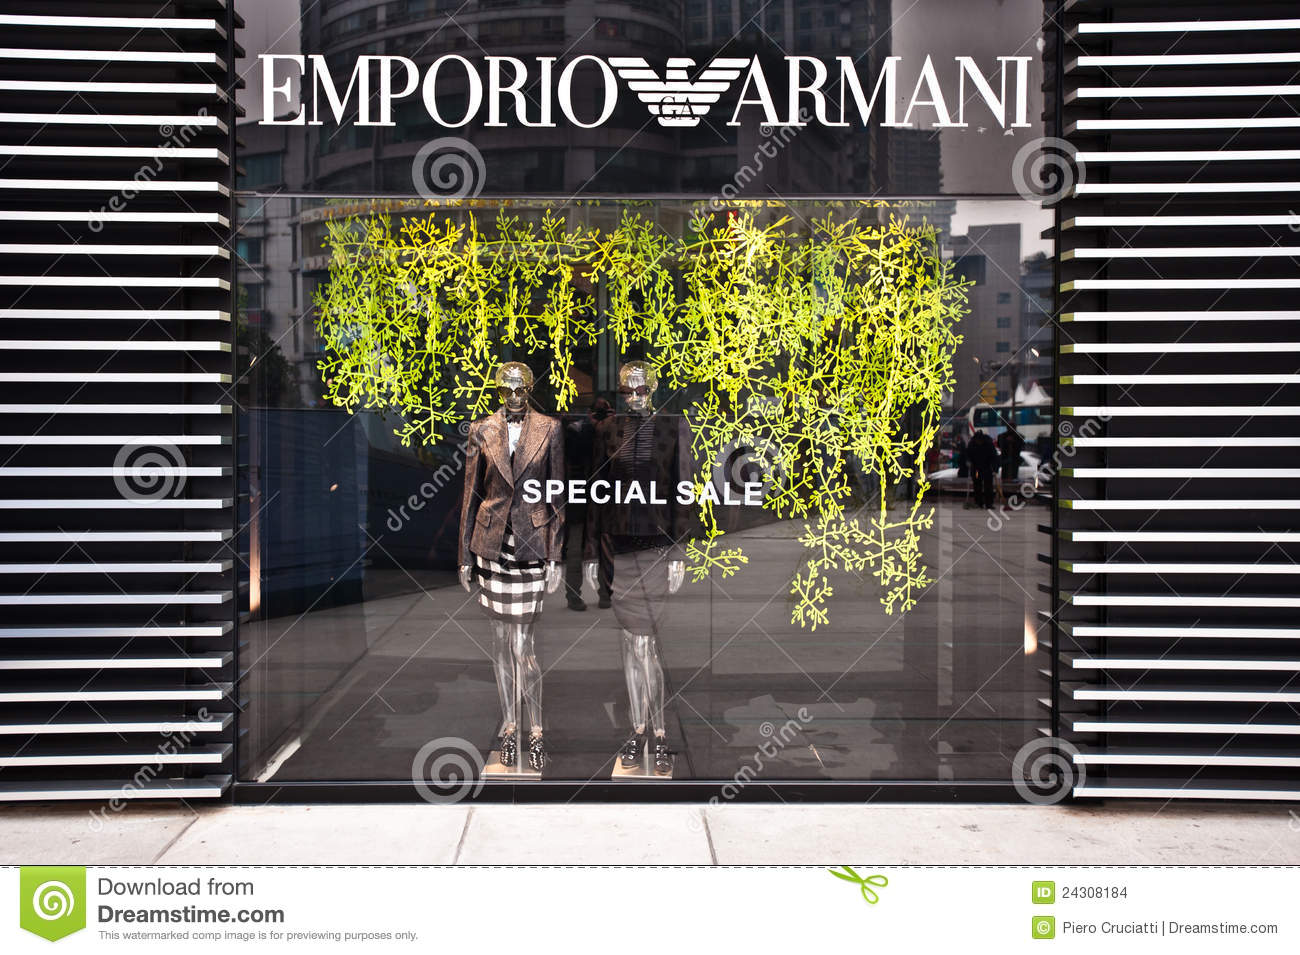 CHONGQING, CHINA - JAN 22: Emporio Armani boutique in Chongqing on